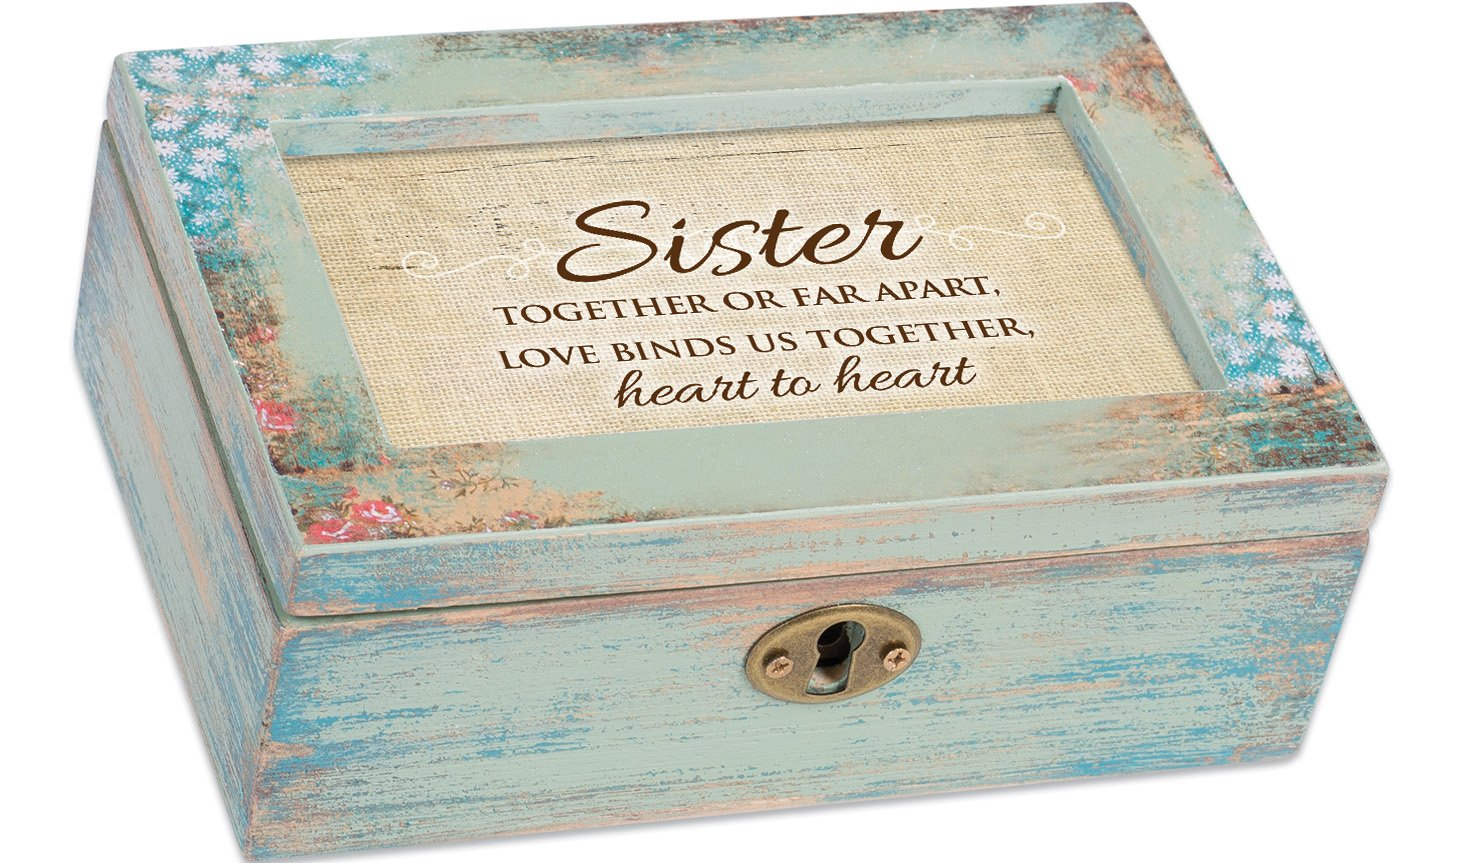 Cottage Garden Sister Together Heart to Heart Distressed Wood Jewelry Music Box Plays Tune Wonderful World